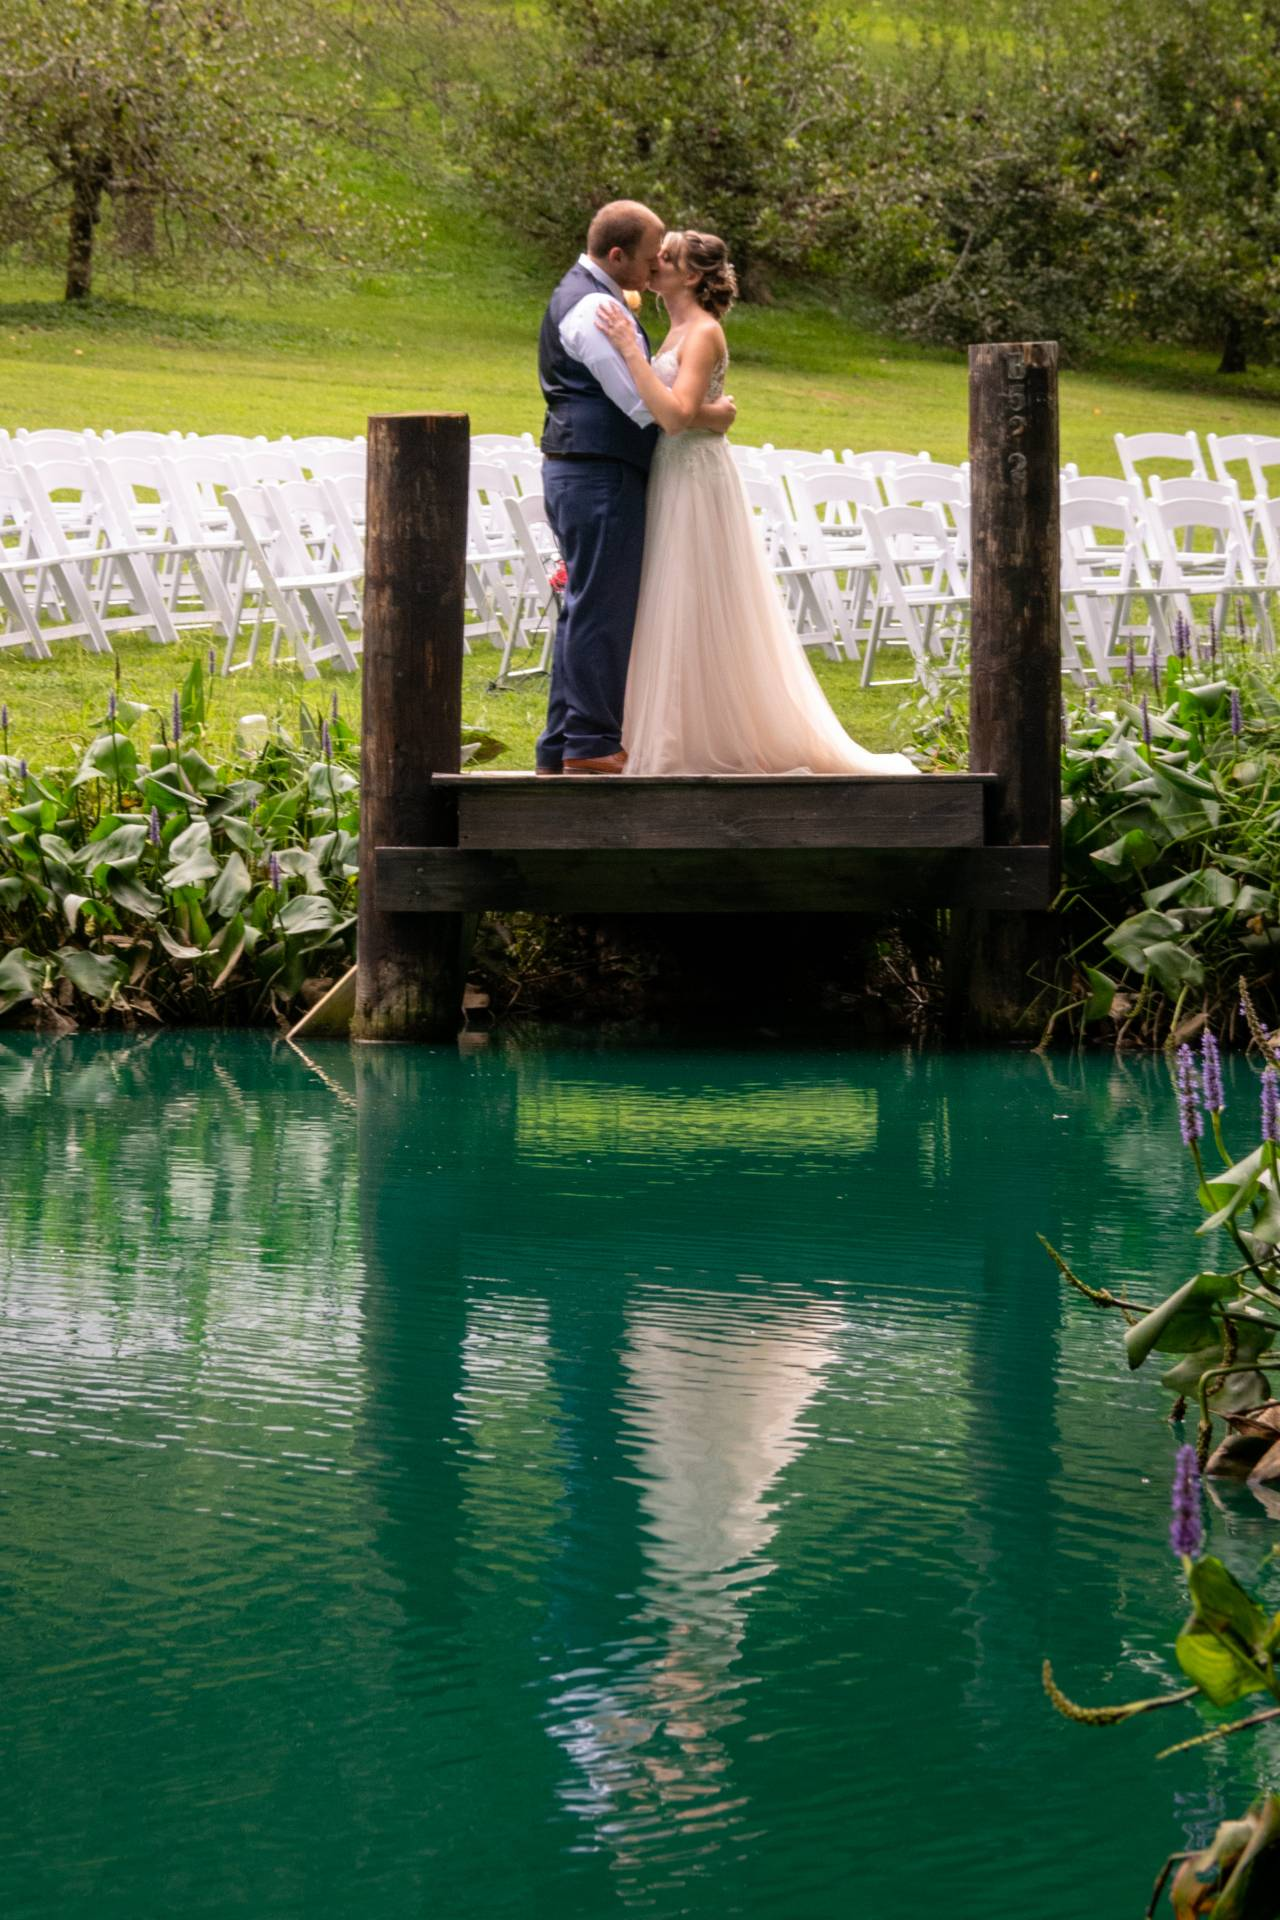 Bride and groom, lakeside wedding, Smoky Mountain lake wedding, Smoky Mountain wedding photography, Smoky Mountain wedding venue, Smoky Mountain wedding venue with lake, Smoky Mountain groom, Smoky Mountain field, Great Smoky Mountain National Park Weddings